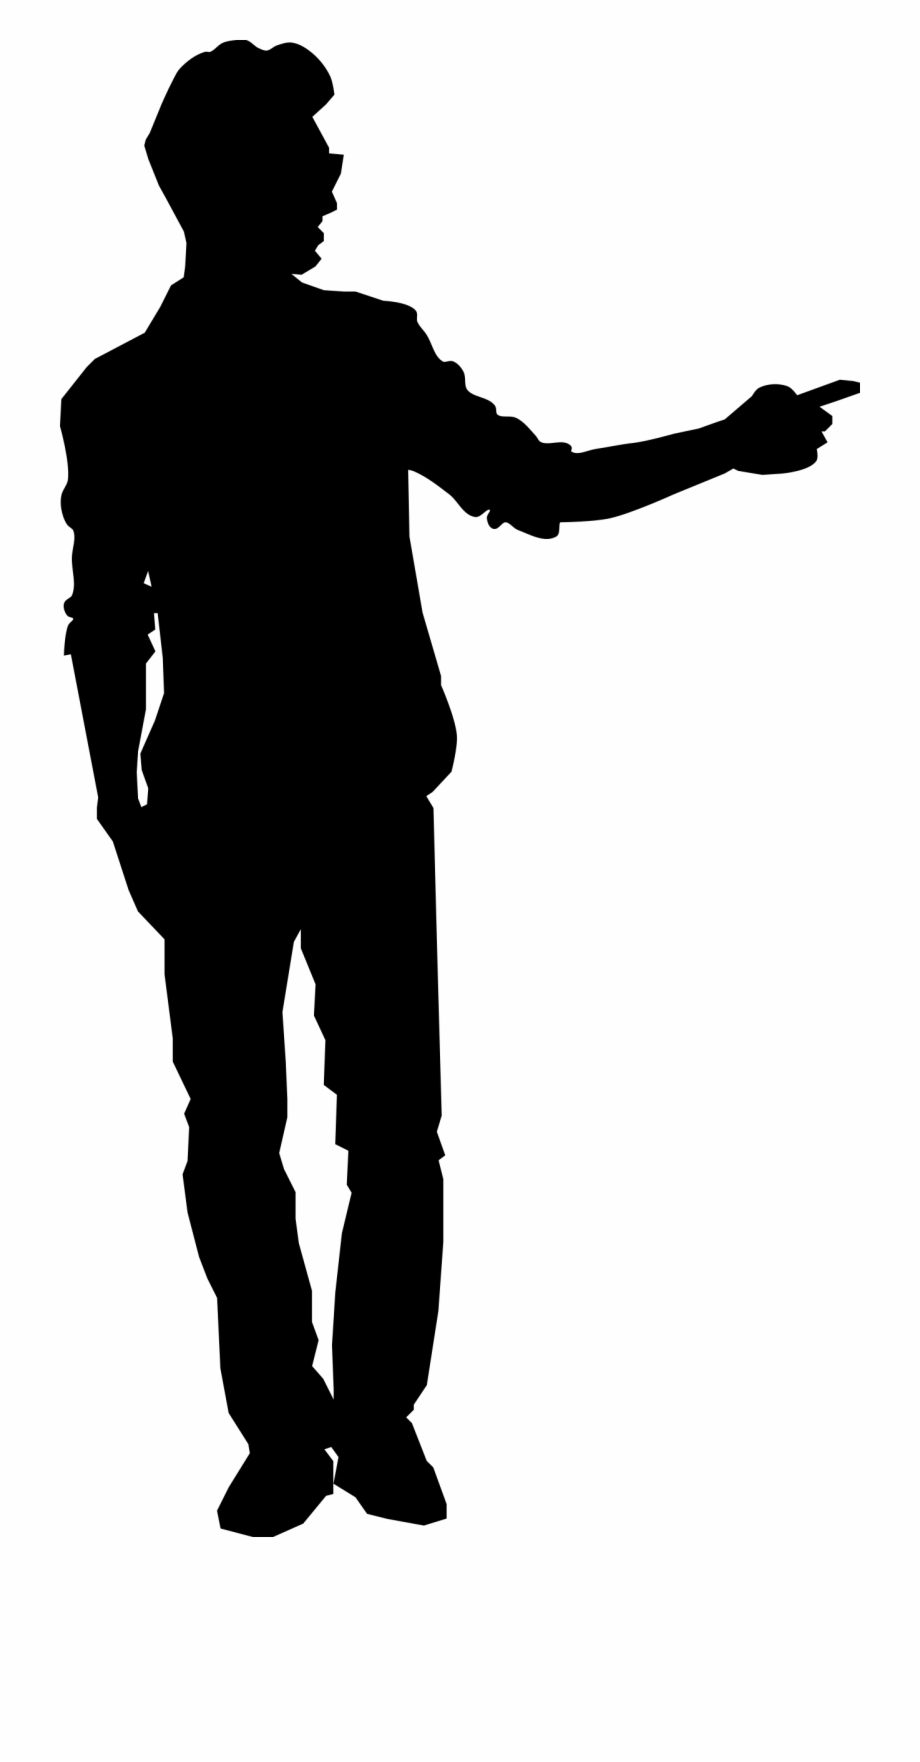 Black men silhoutte clipart clip art free download Man Pointing Silhouette Clipart Png - Man Pointing Silhouette Png ... clip art free download